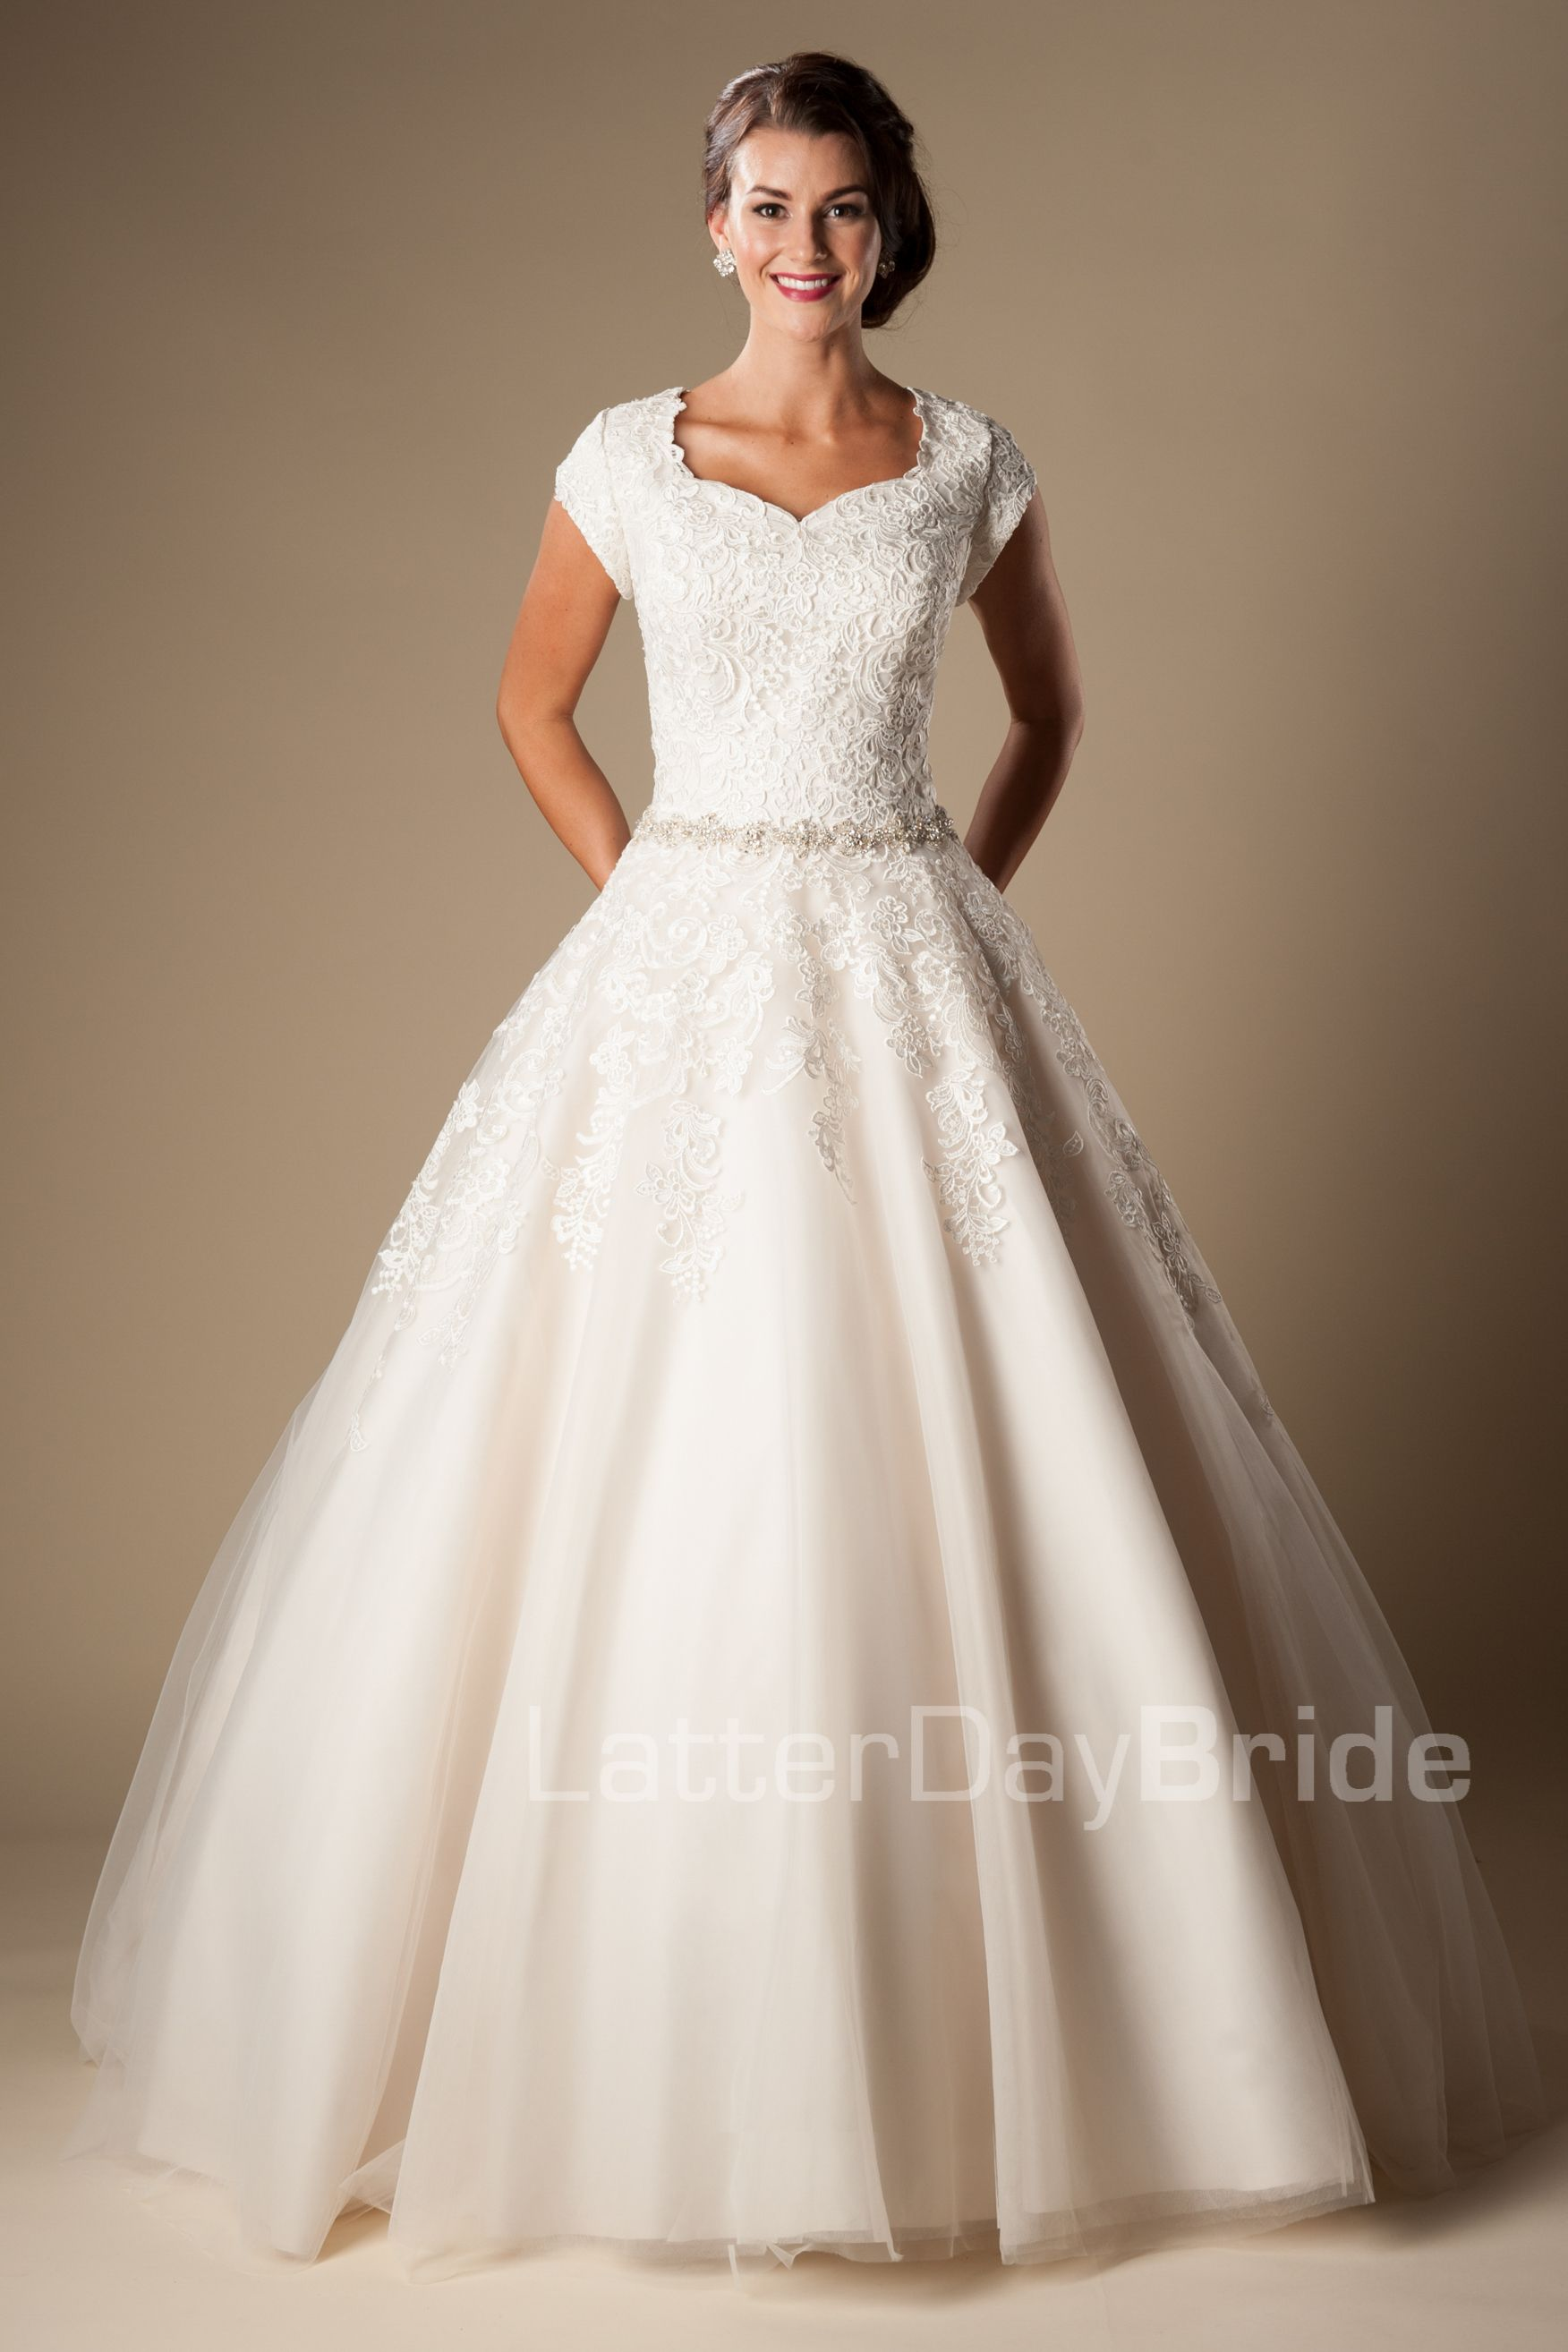 Modest wedding dress fiona frontg wedding dresses pinterest on sale modest wedding dresses fiona lace ballgown ombrellifo Image collections